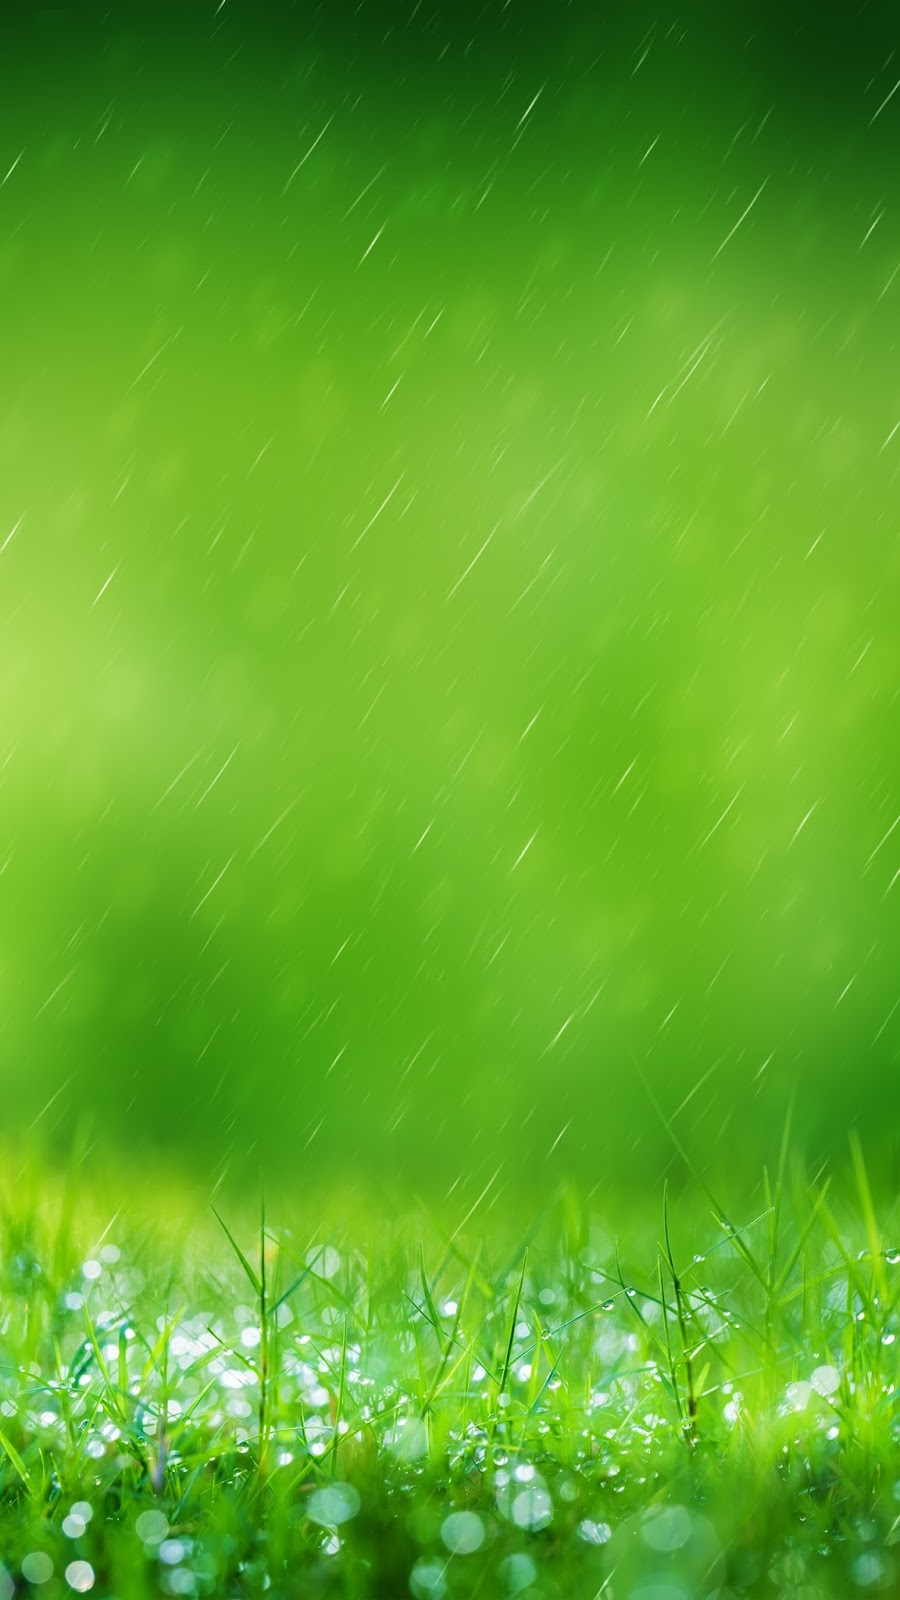 4k Wallpapers For S7 Edge Samsung S7 Wallpaper Grass 317865 Hd Wallpaper Backgrounds Download